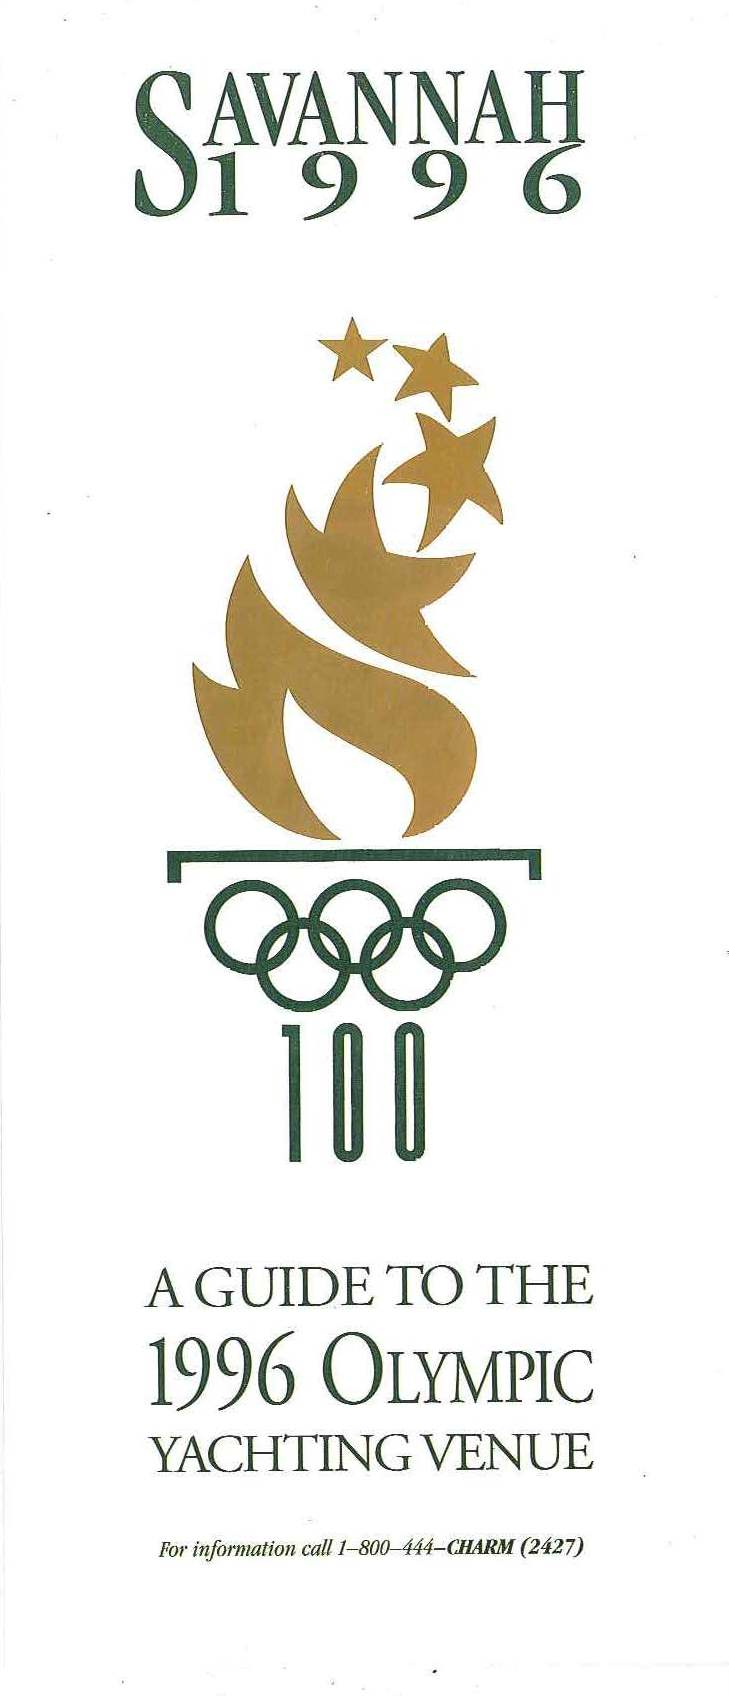 Savannah 1996 Olympic Guide